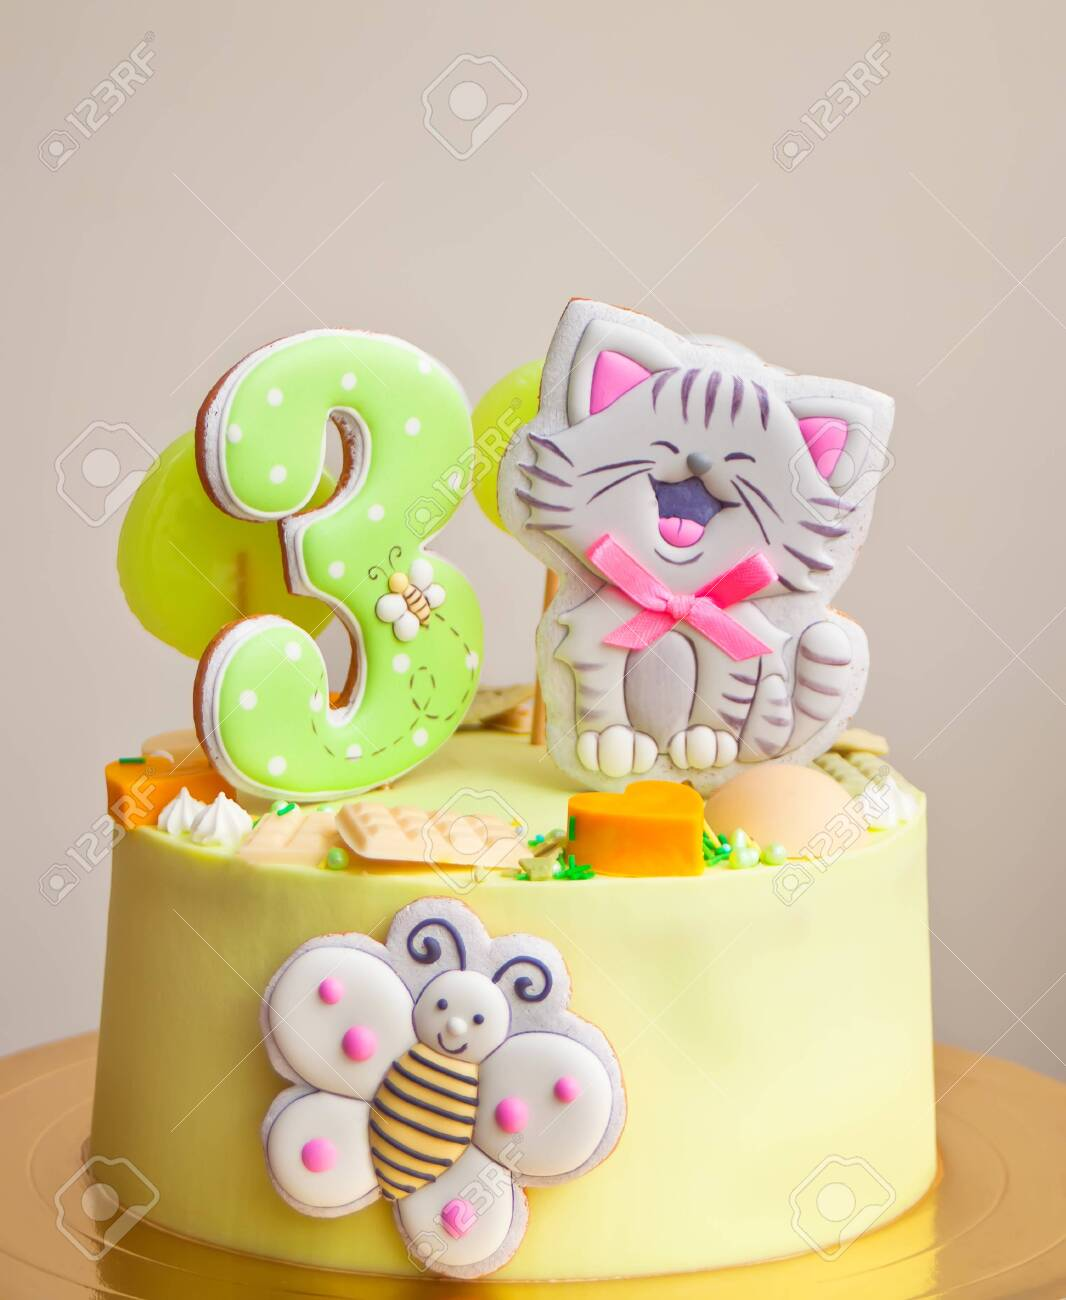 Groovy Birthday Cake For Little Girl Decorated Funny Cookies With Cat Funny Birthday Cards Online Inifofree Goldxyz